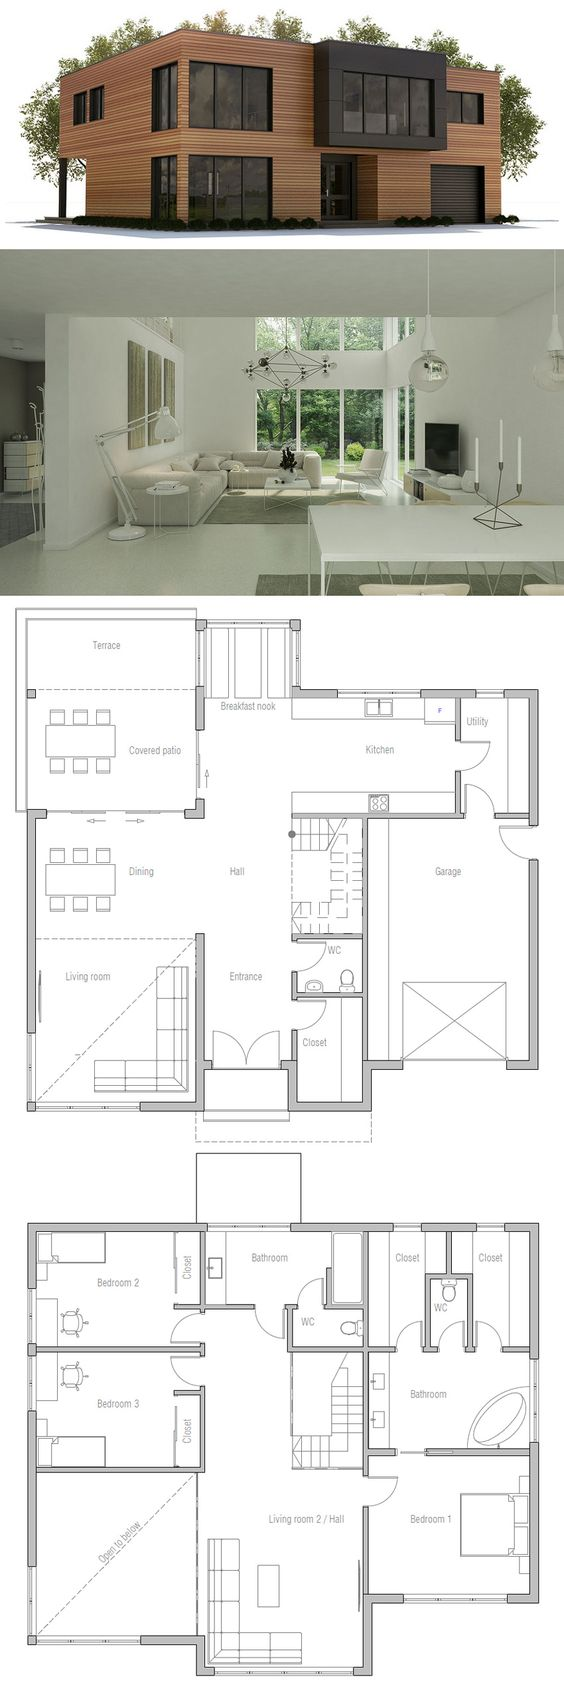 Modern house plans, Minimalist house and Minimalist house design ... size: 564 x 1704 post ID: 7 File size: 0 B